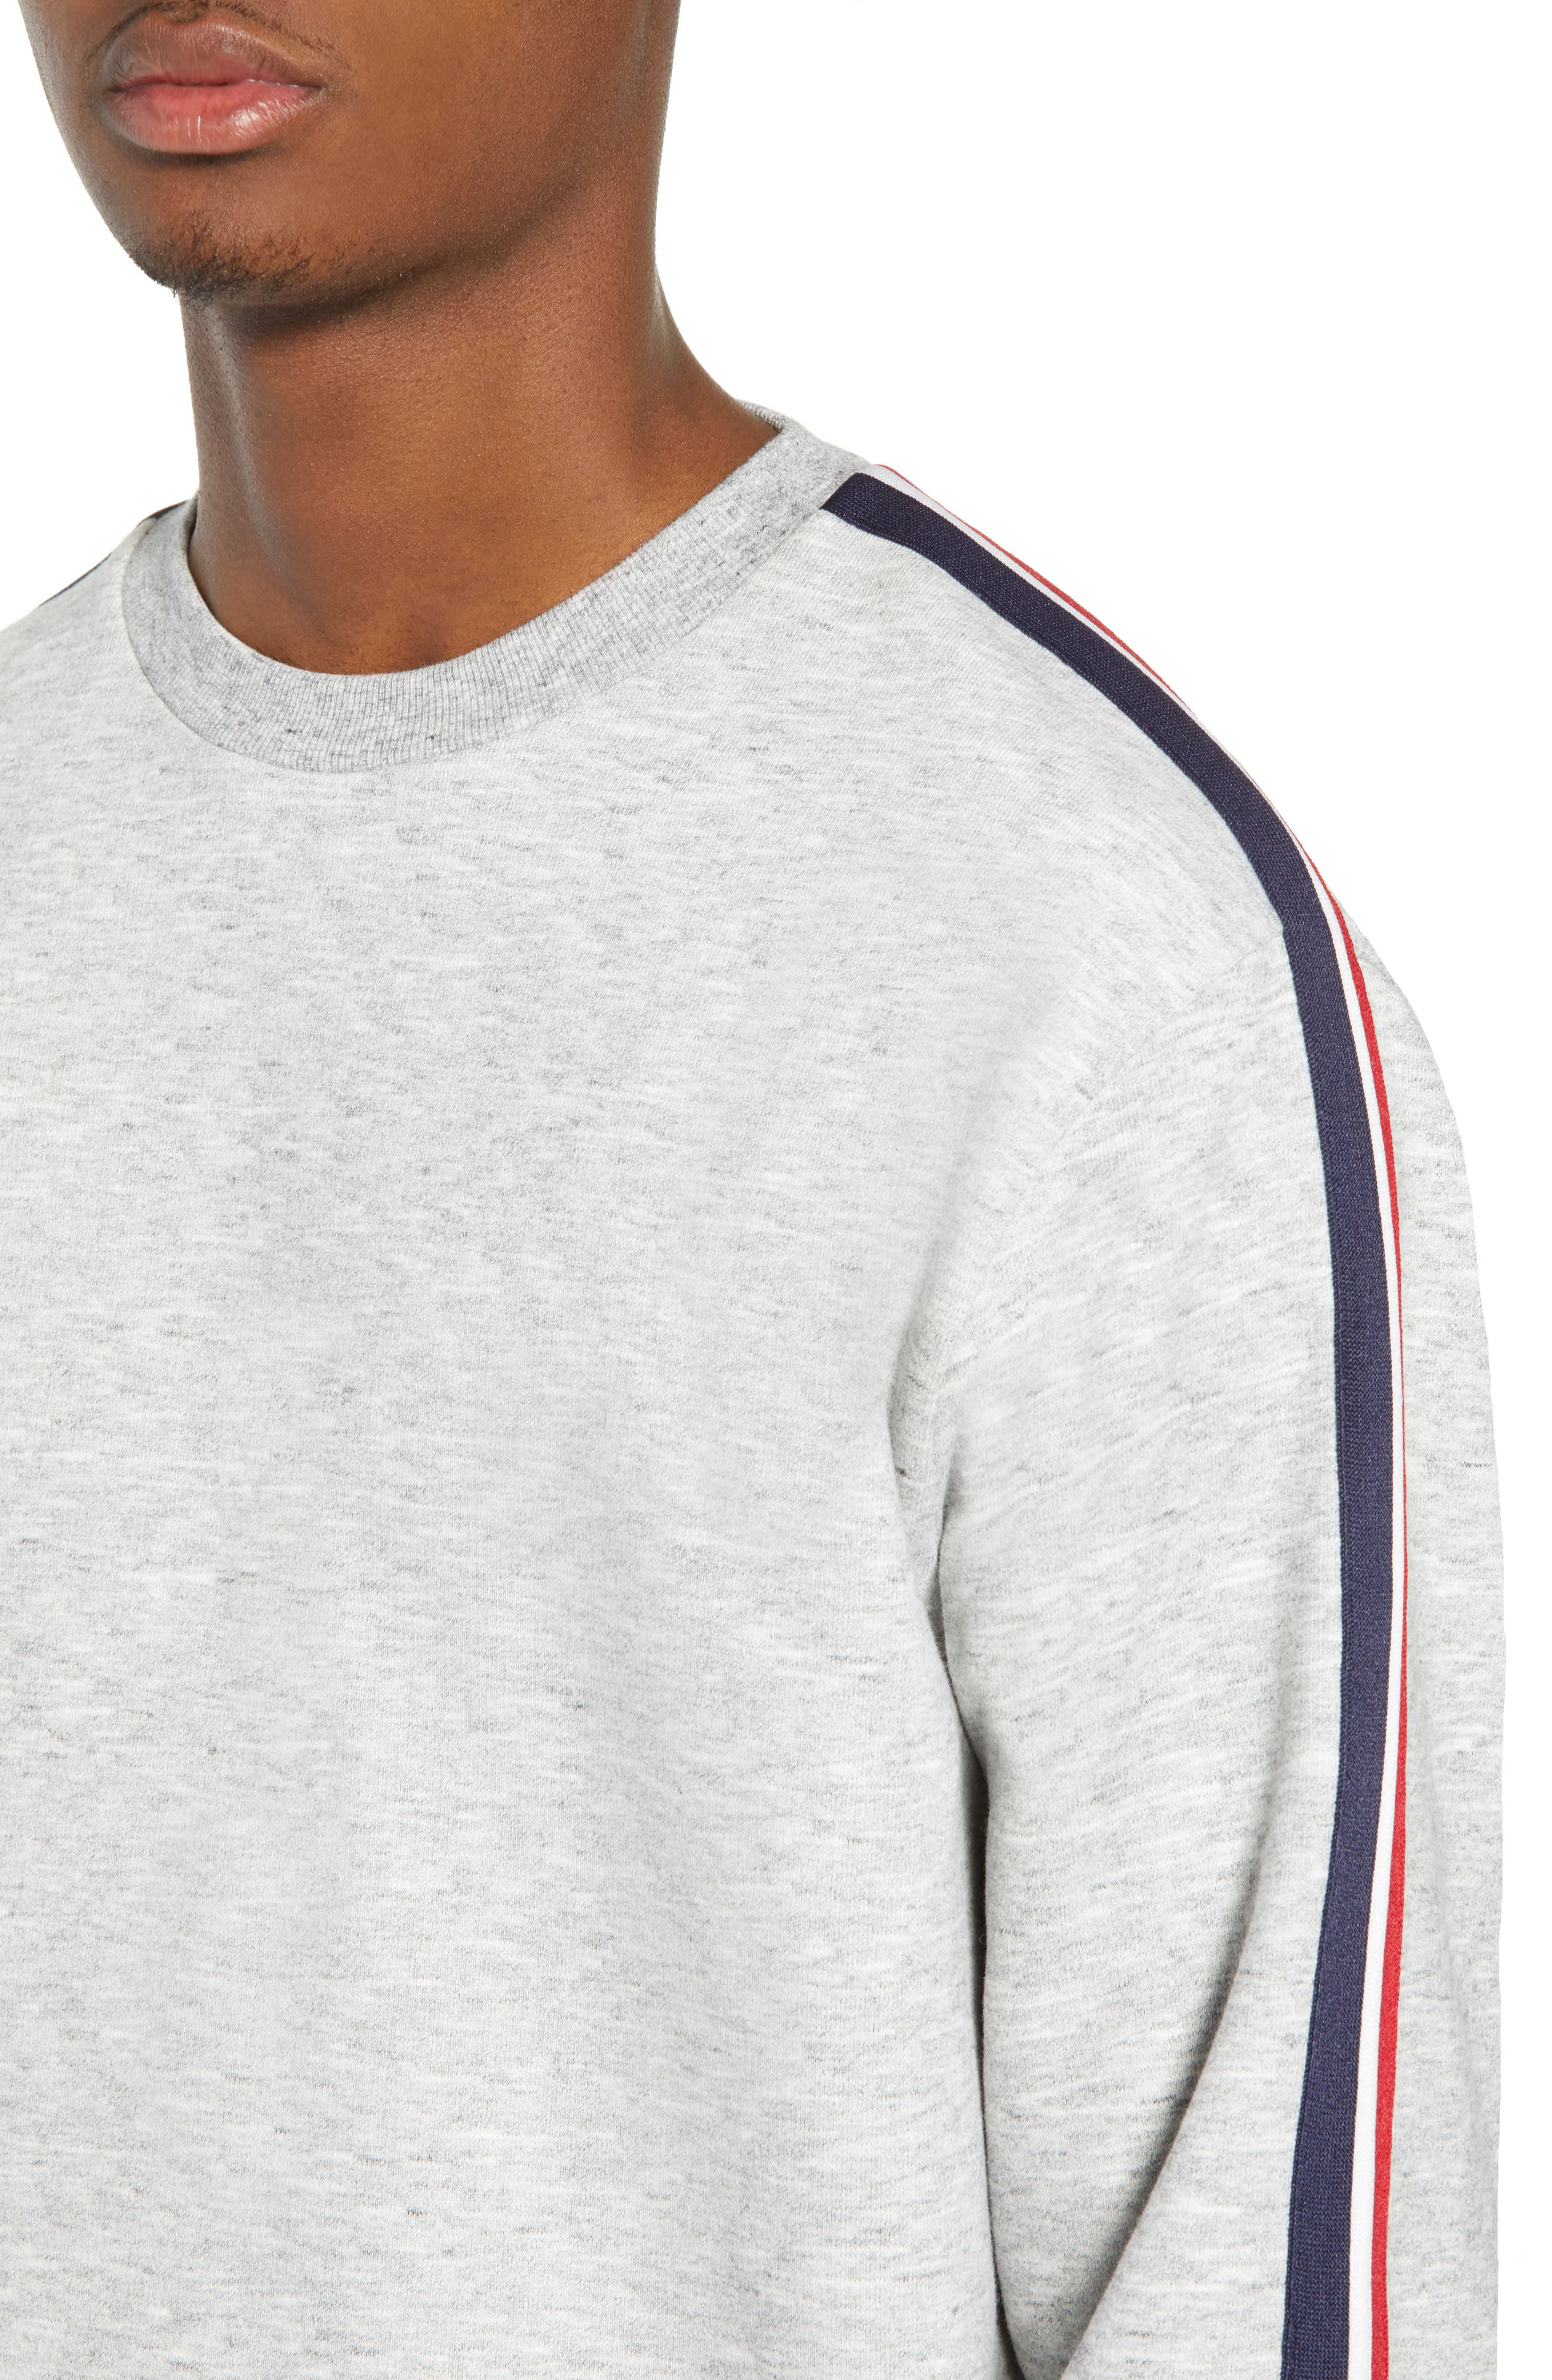 French Stripe Tape Sweatshirt,                             Alternate thumbnail 4, color,                             050